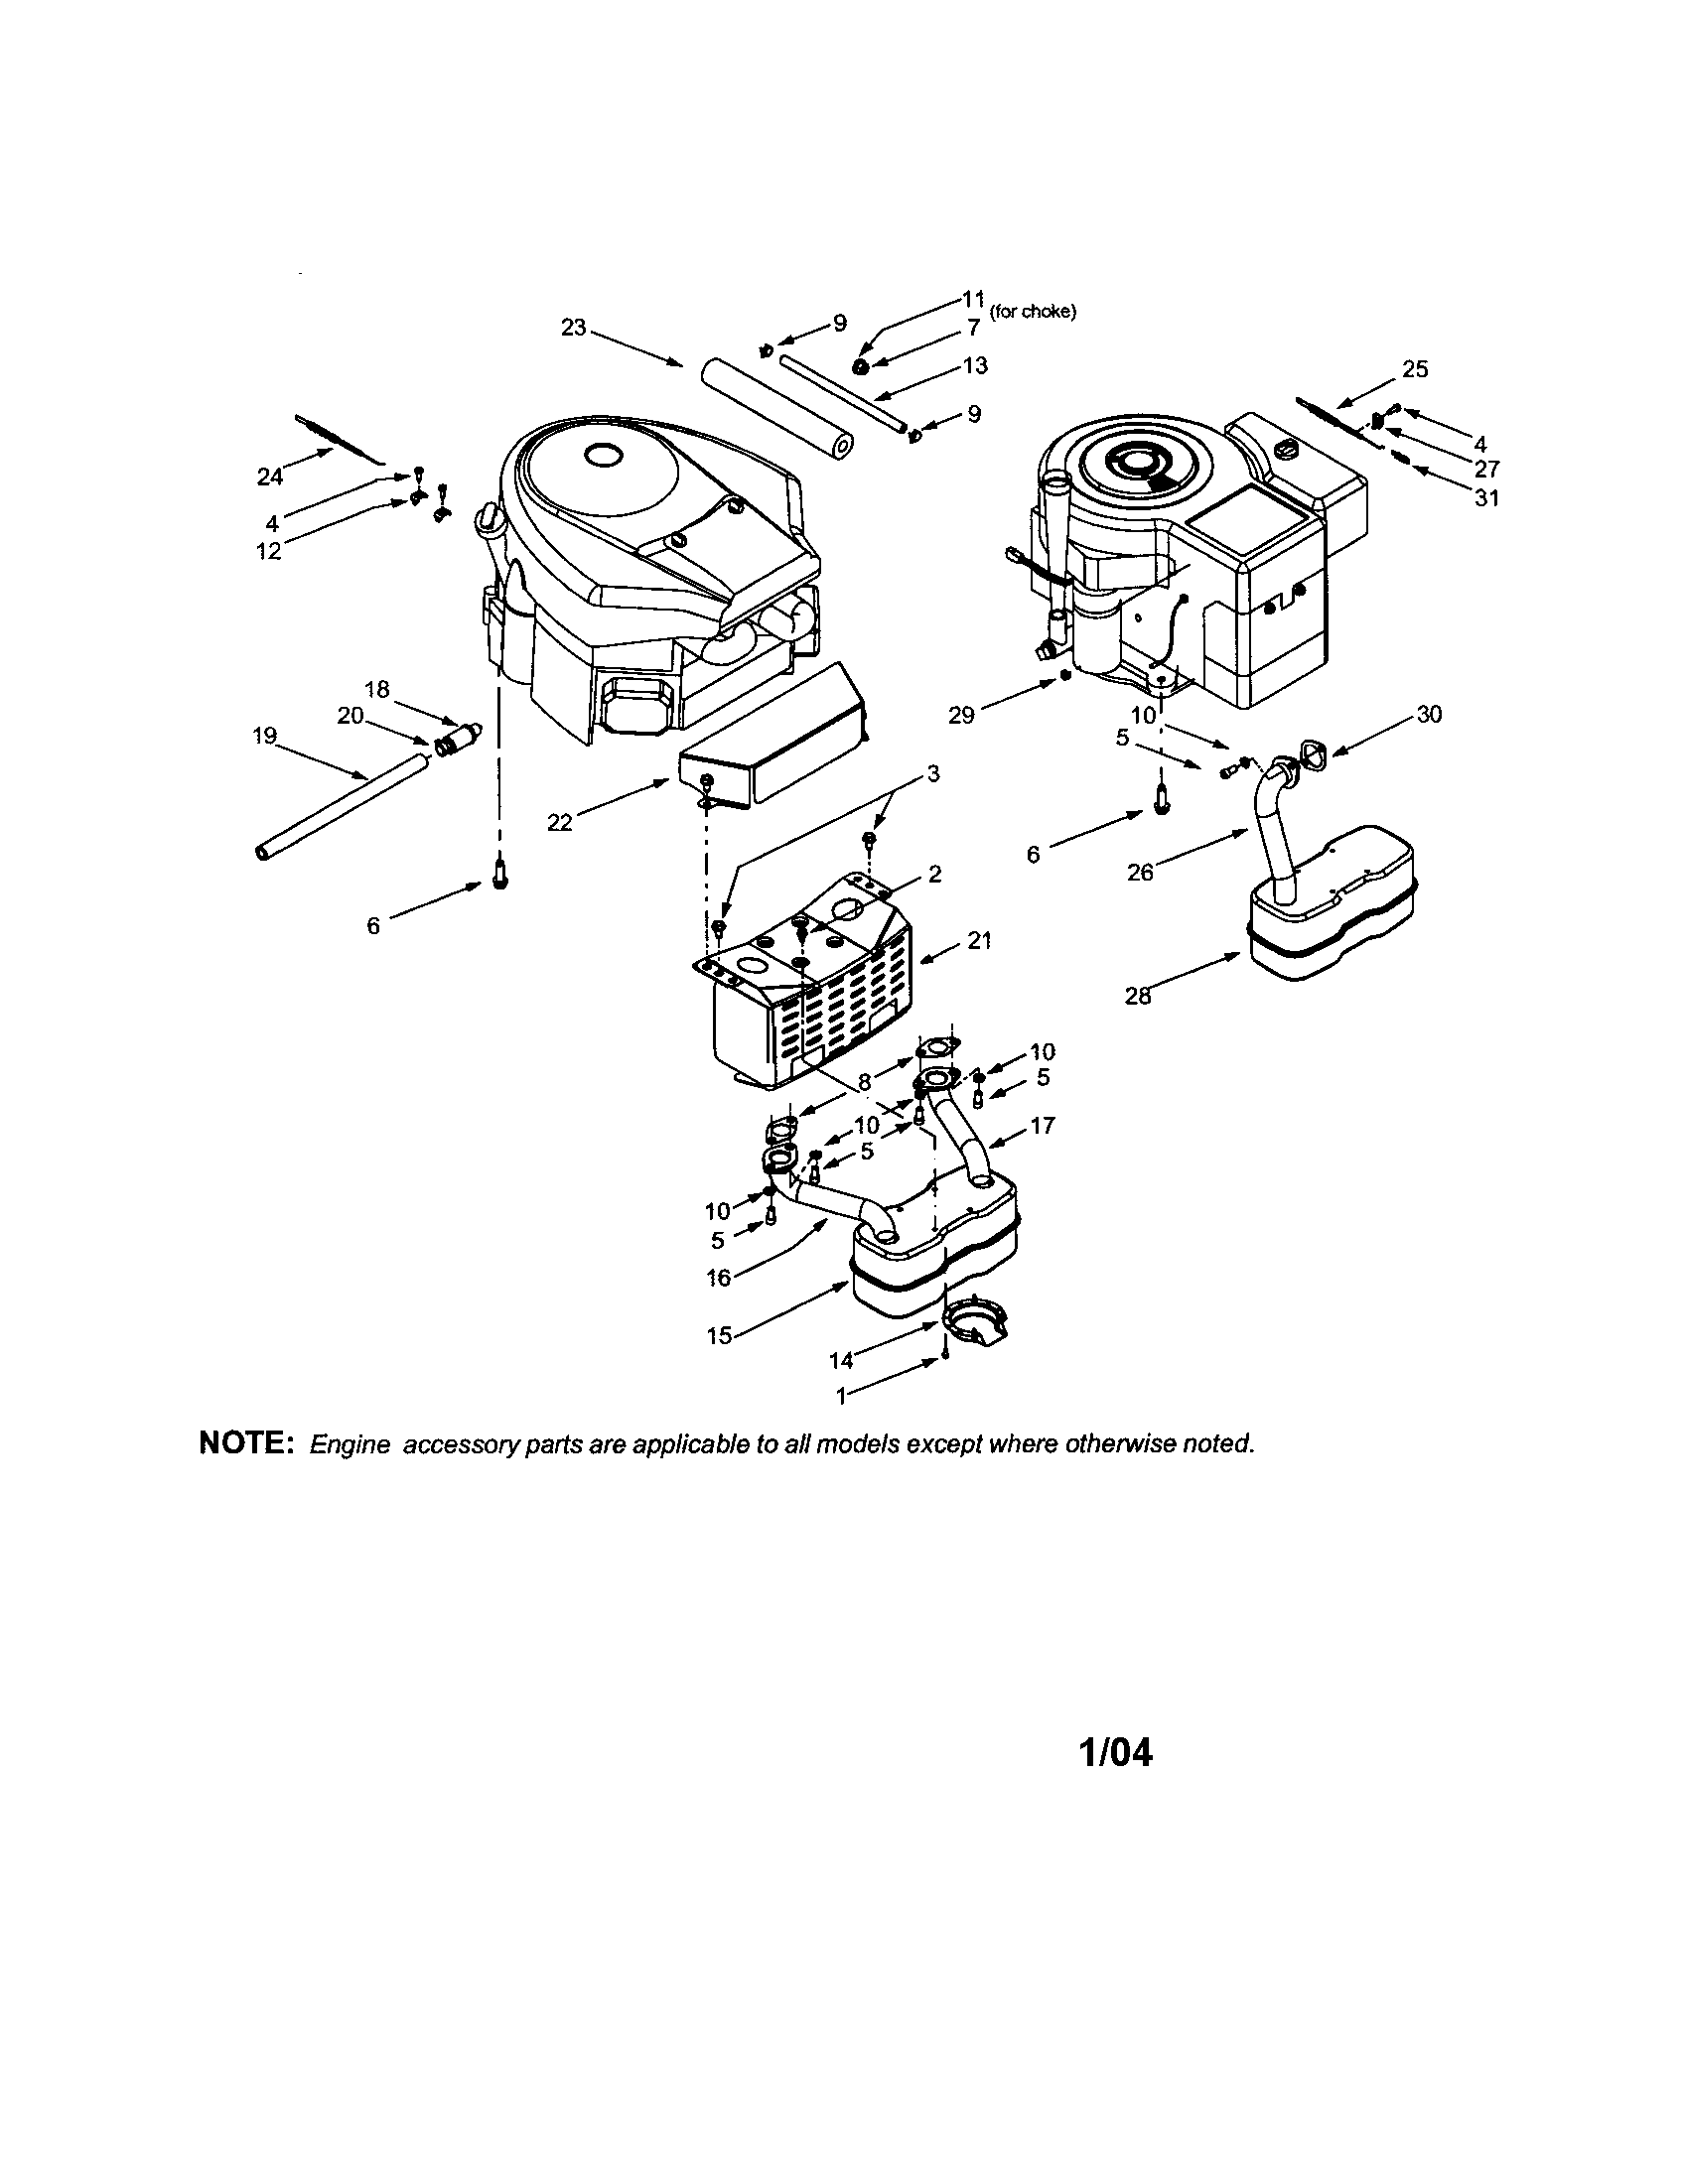 hight resolution of riding lawn mower engine diagram